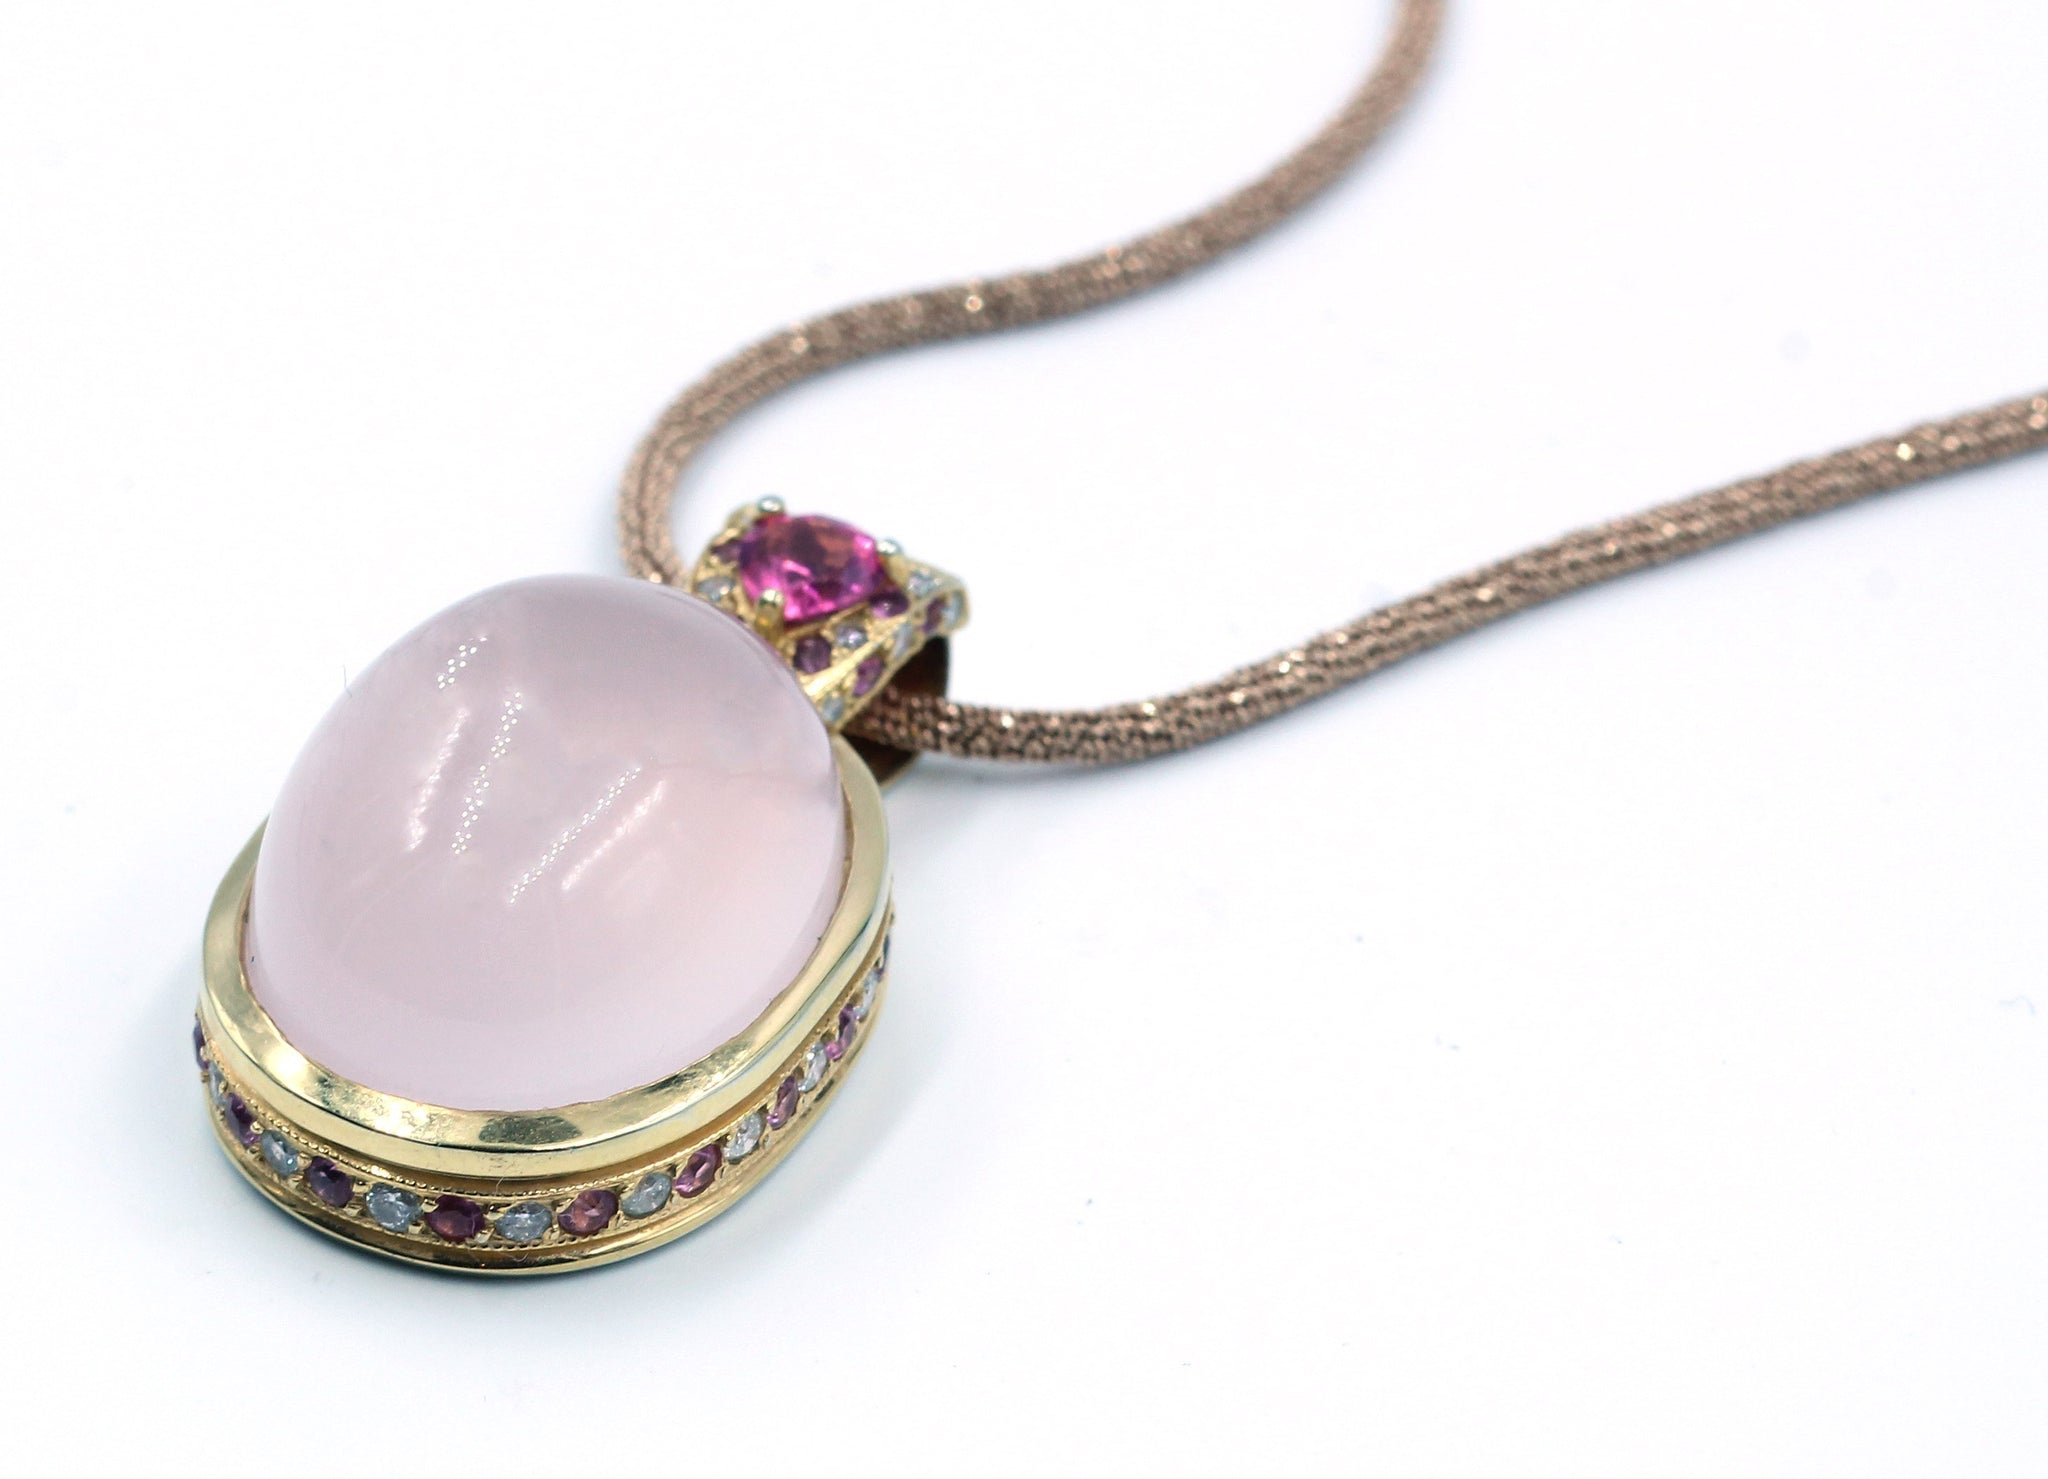 Vintage Rose Quartz, Tourmaline and Diamond Necklace, SOLD